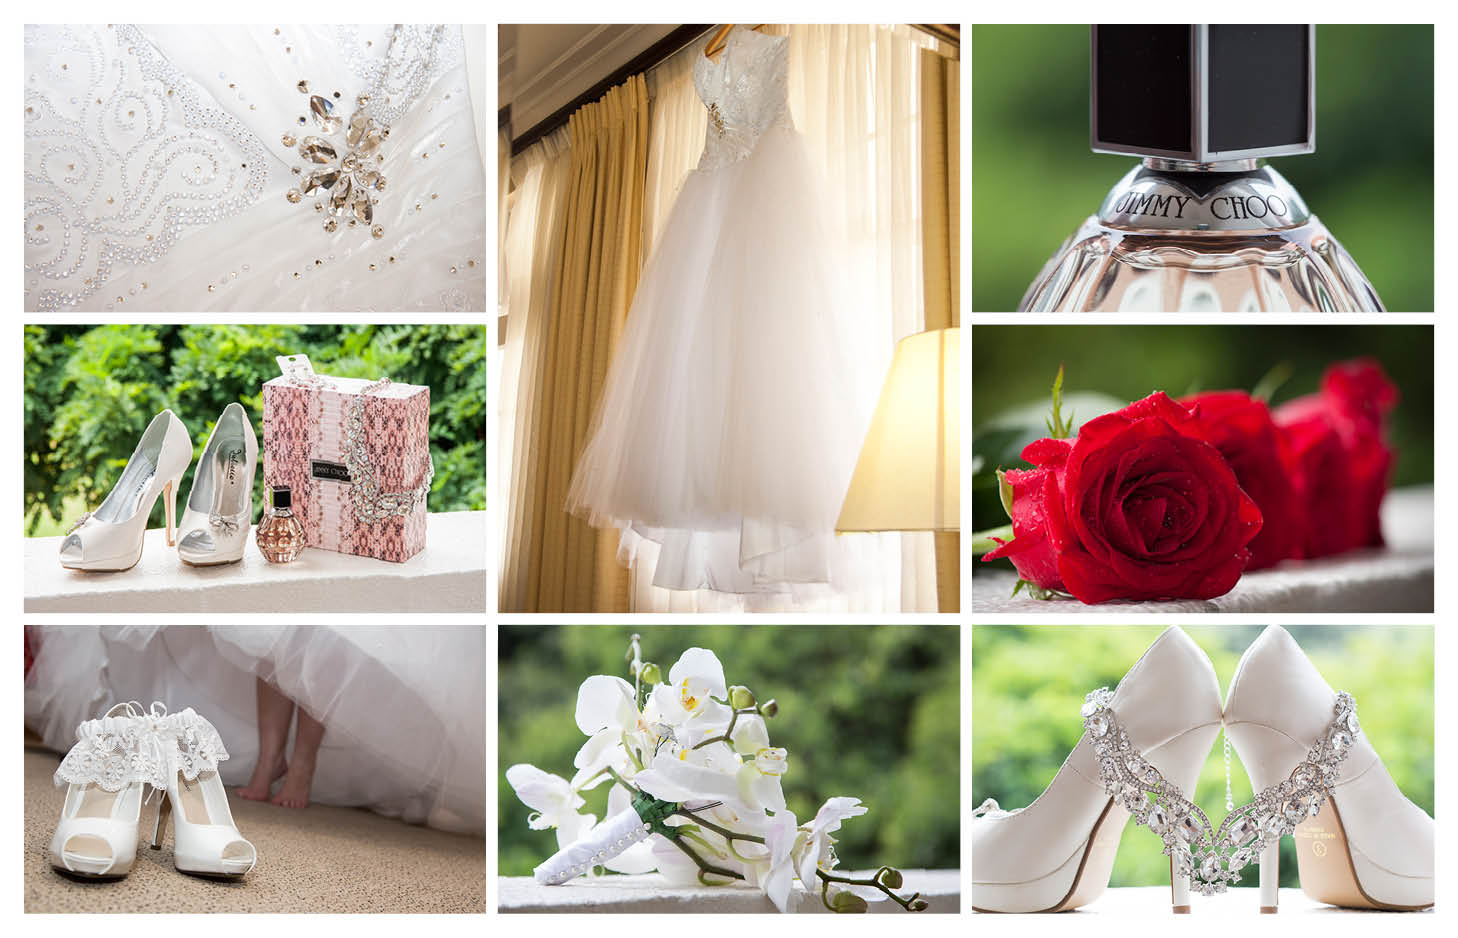 bride detail photography at the country club johannesburg